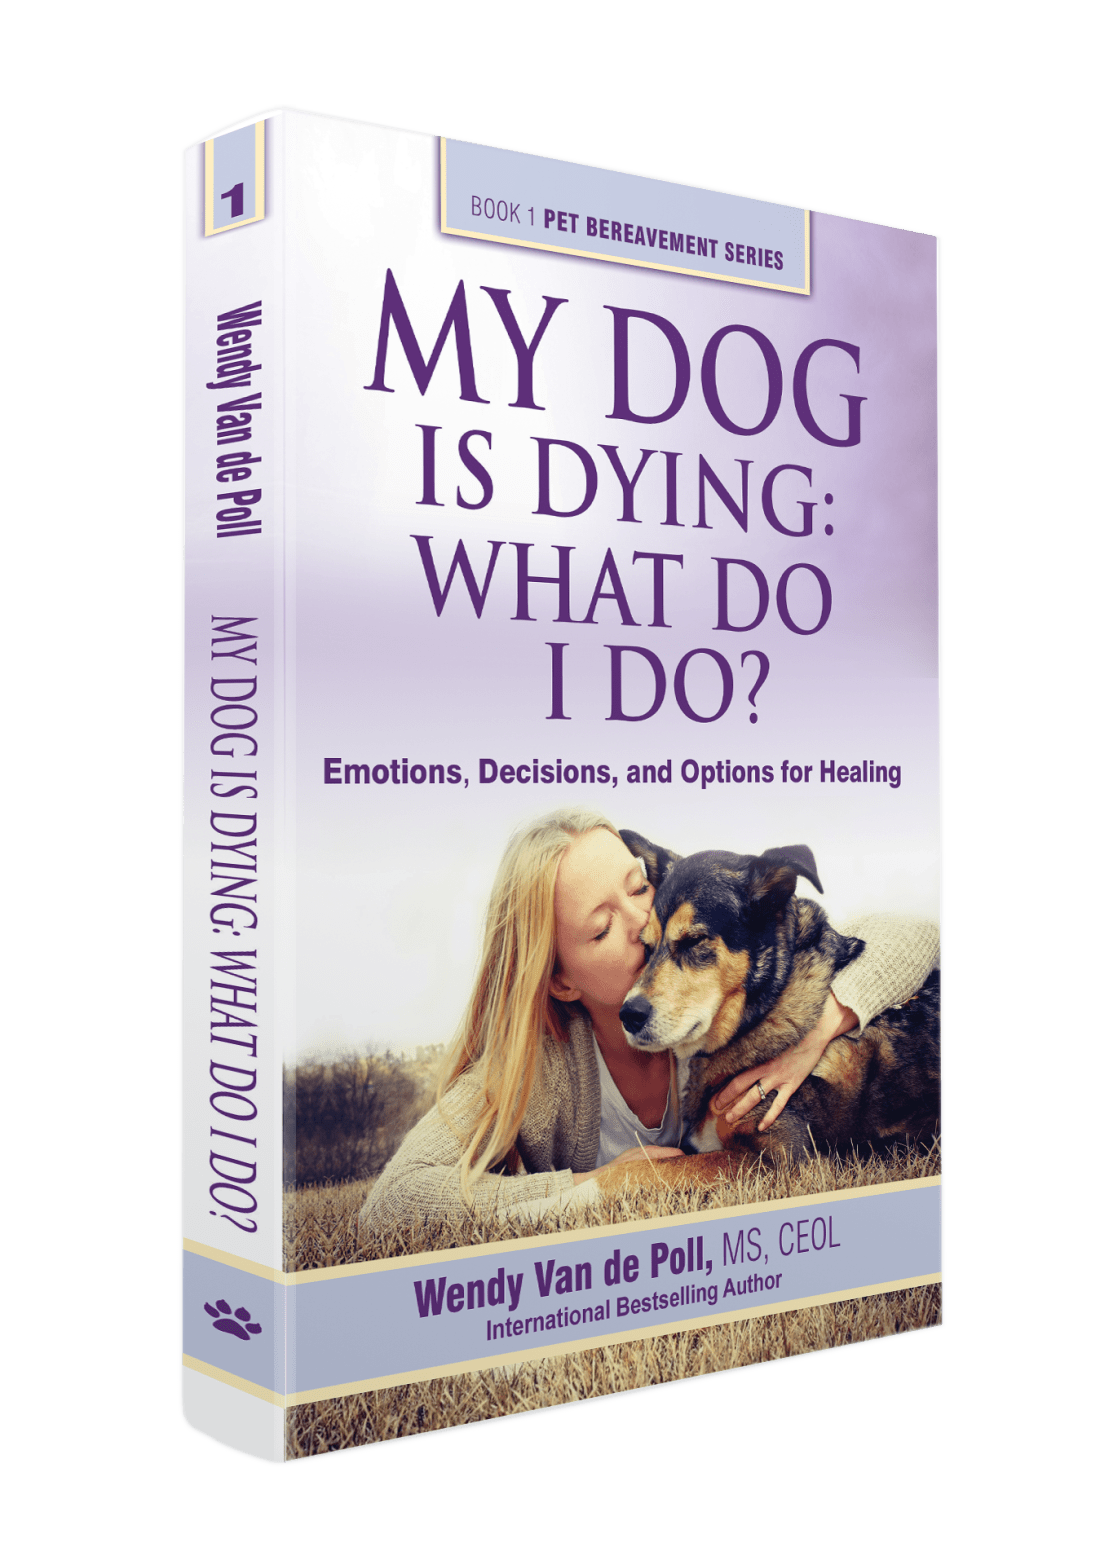 My Dog Is Dying What Do I Do